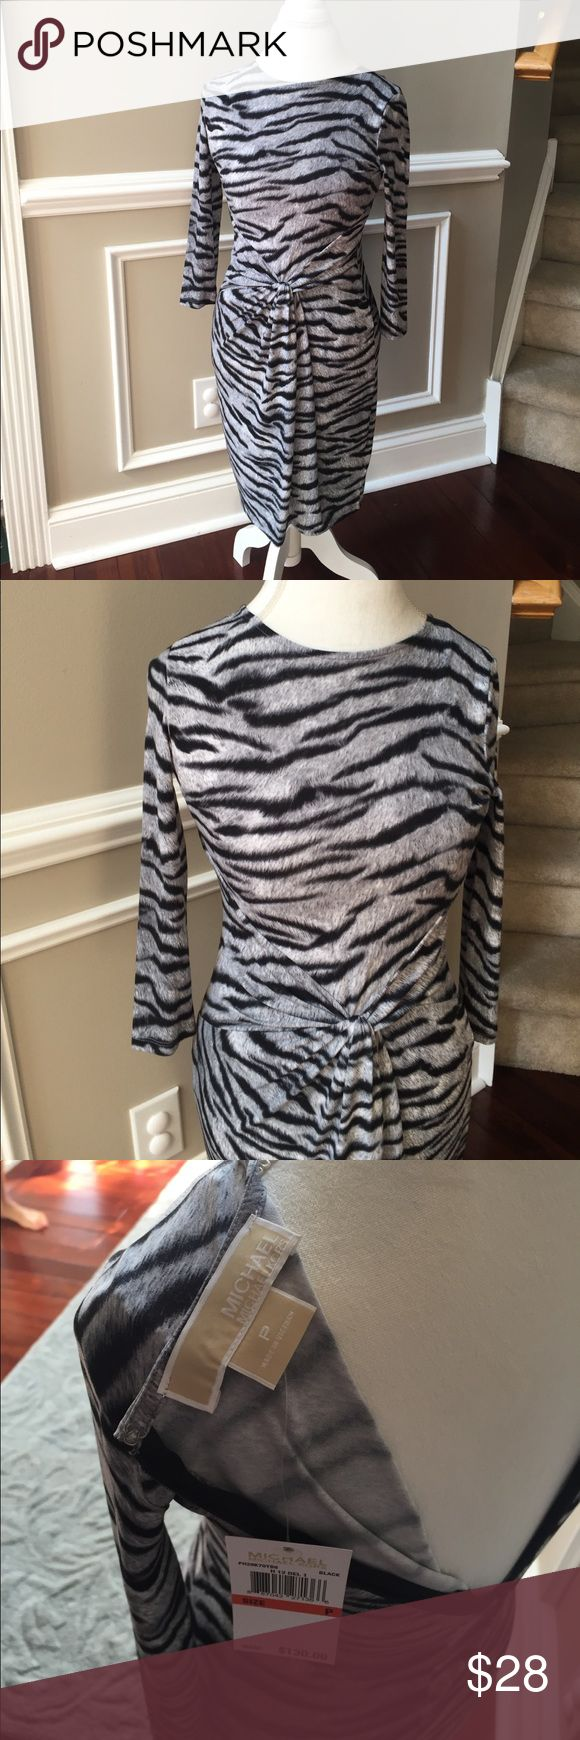 NWT Michael Kors Tiger Print Dress! NWT Michael Kors Tiger Print Dress! Zipper closure on the back. Gathered design on the front. Black, white and grey deign. Soft poly/spandex blend. Size petite, fits a small, has some stretch. Michael Kors Dresses Midi